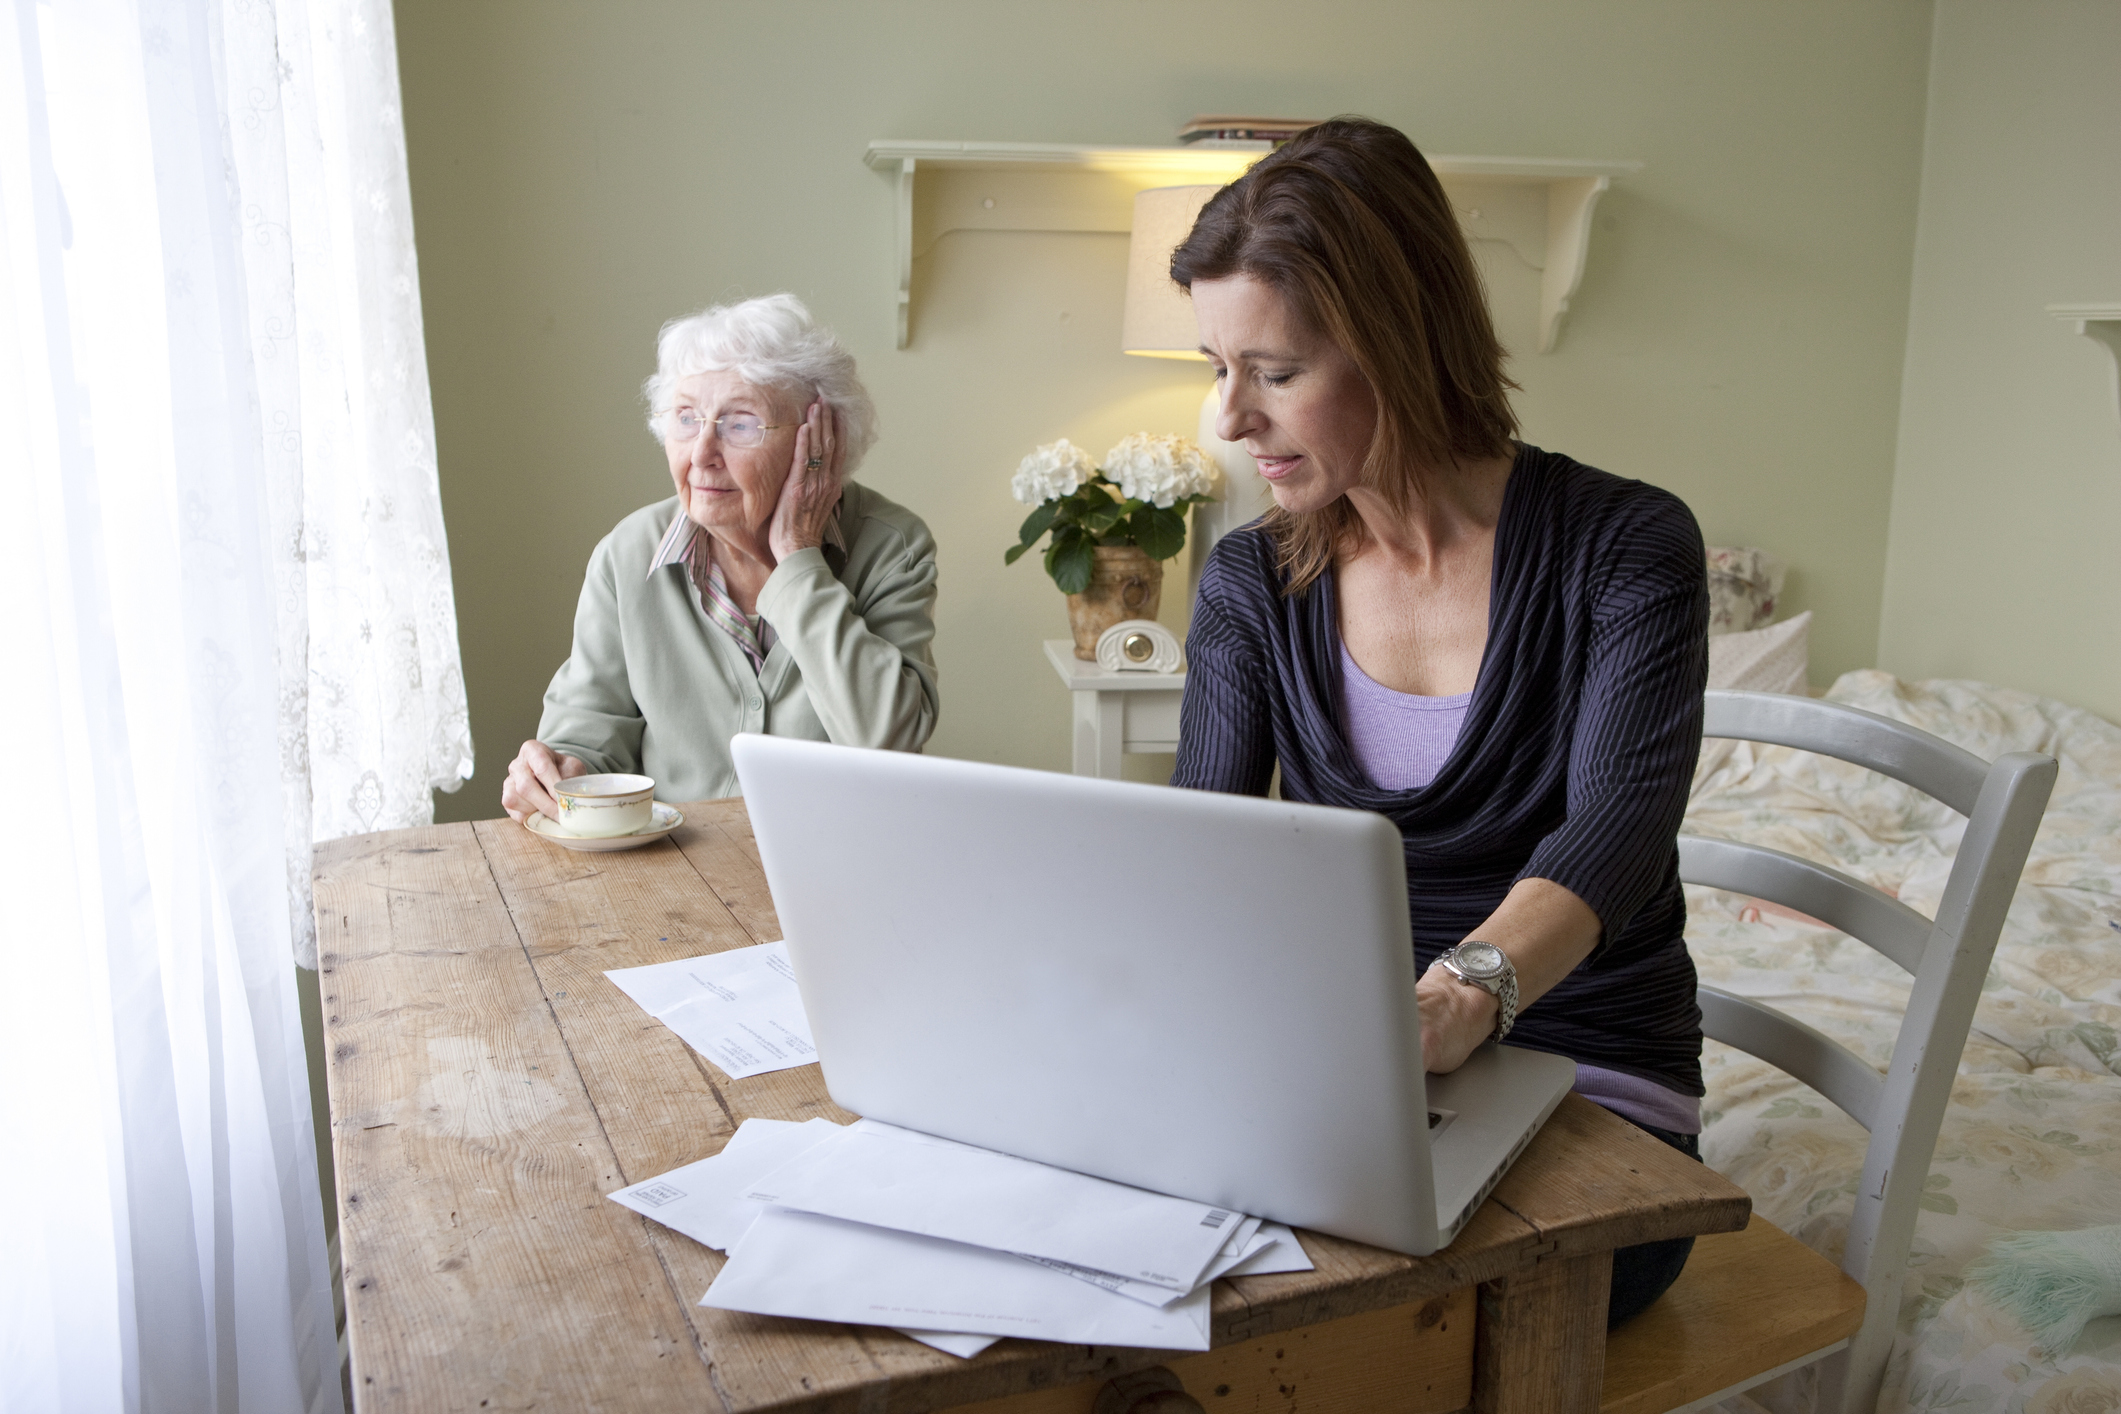 The medical care expense deduction is a senior care tax break